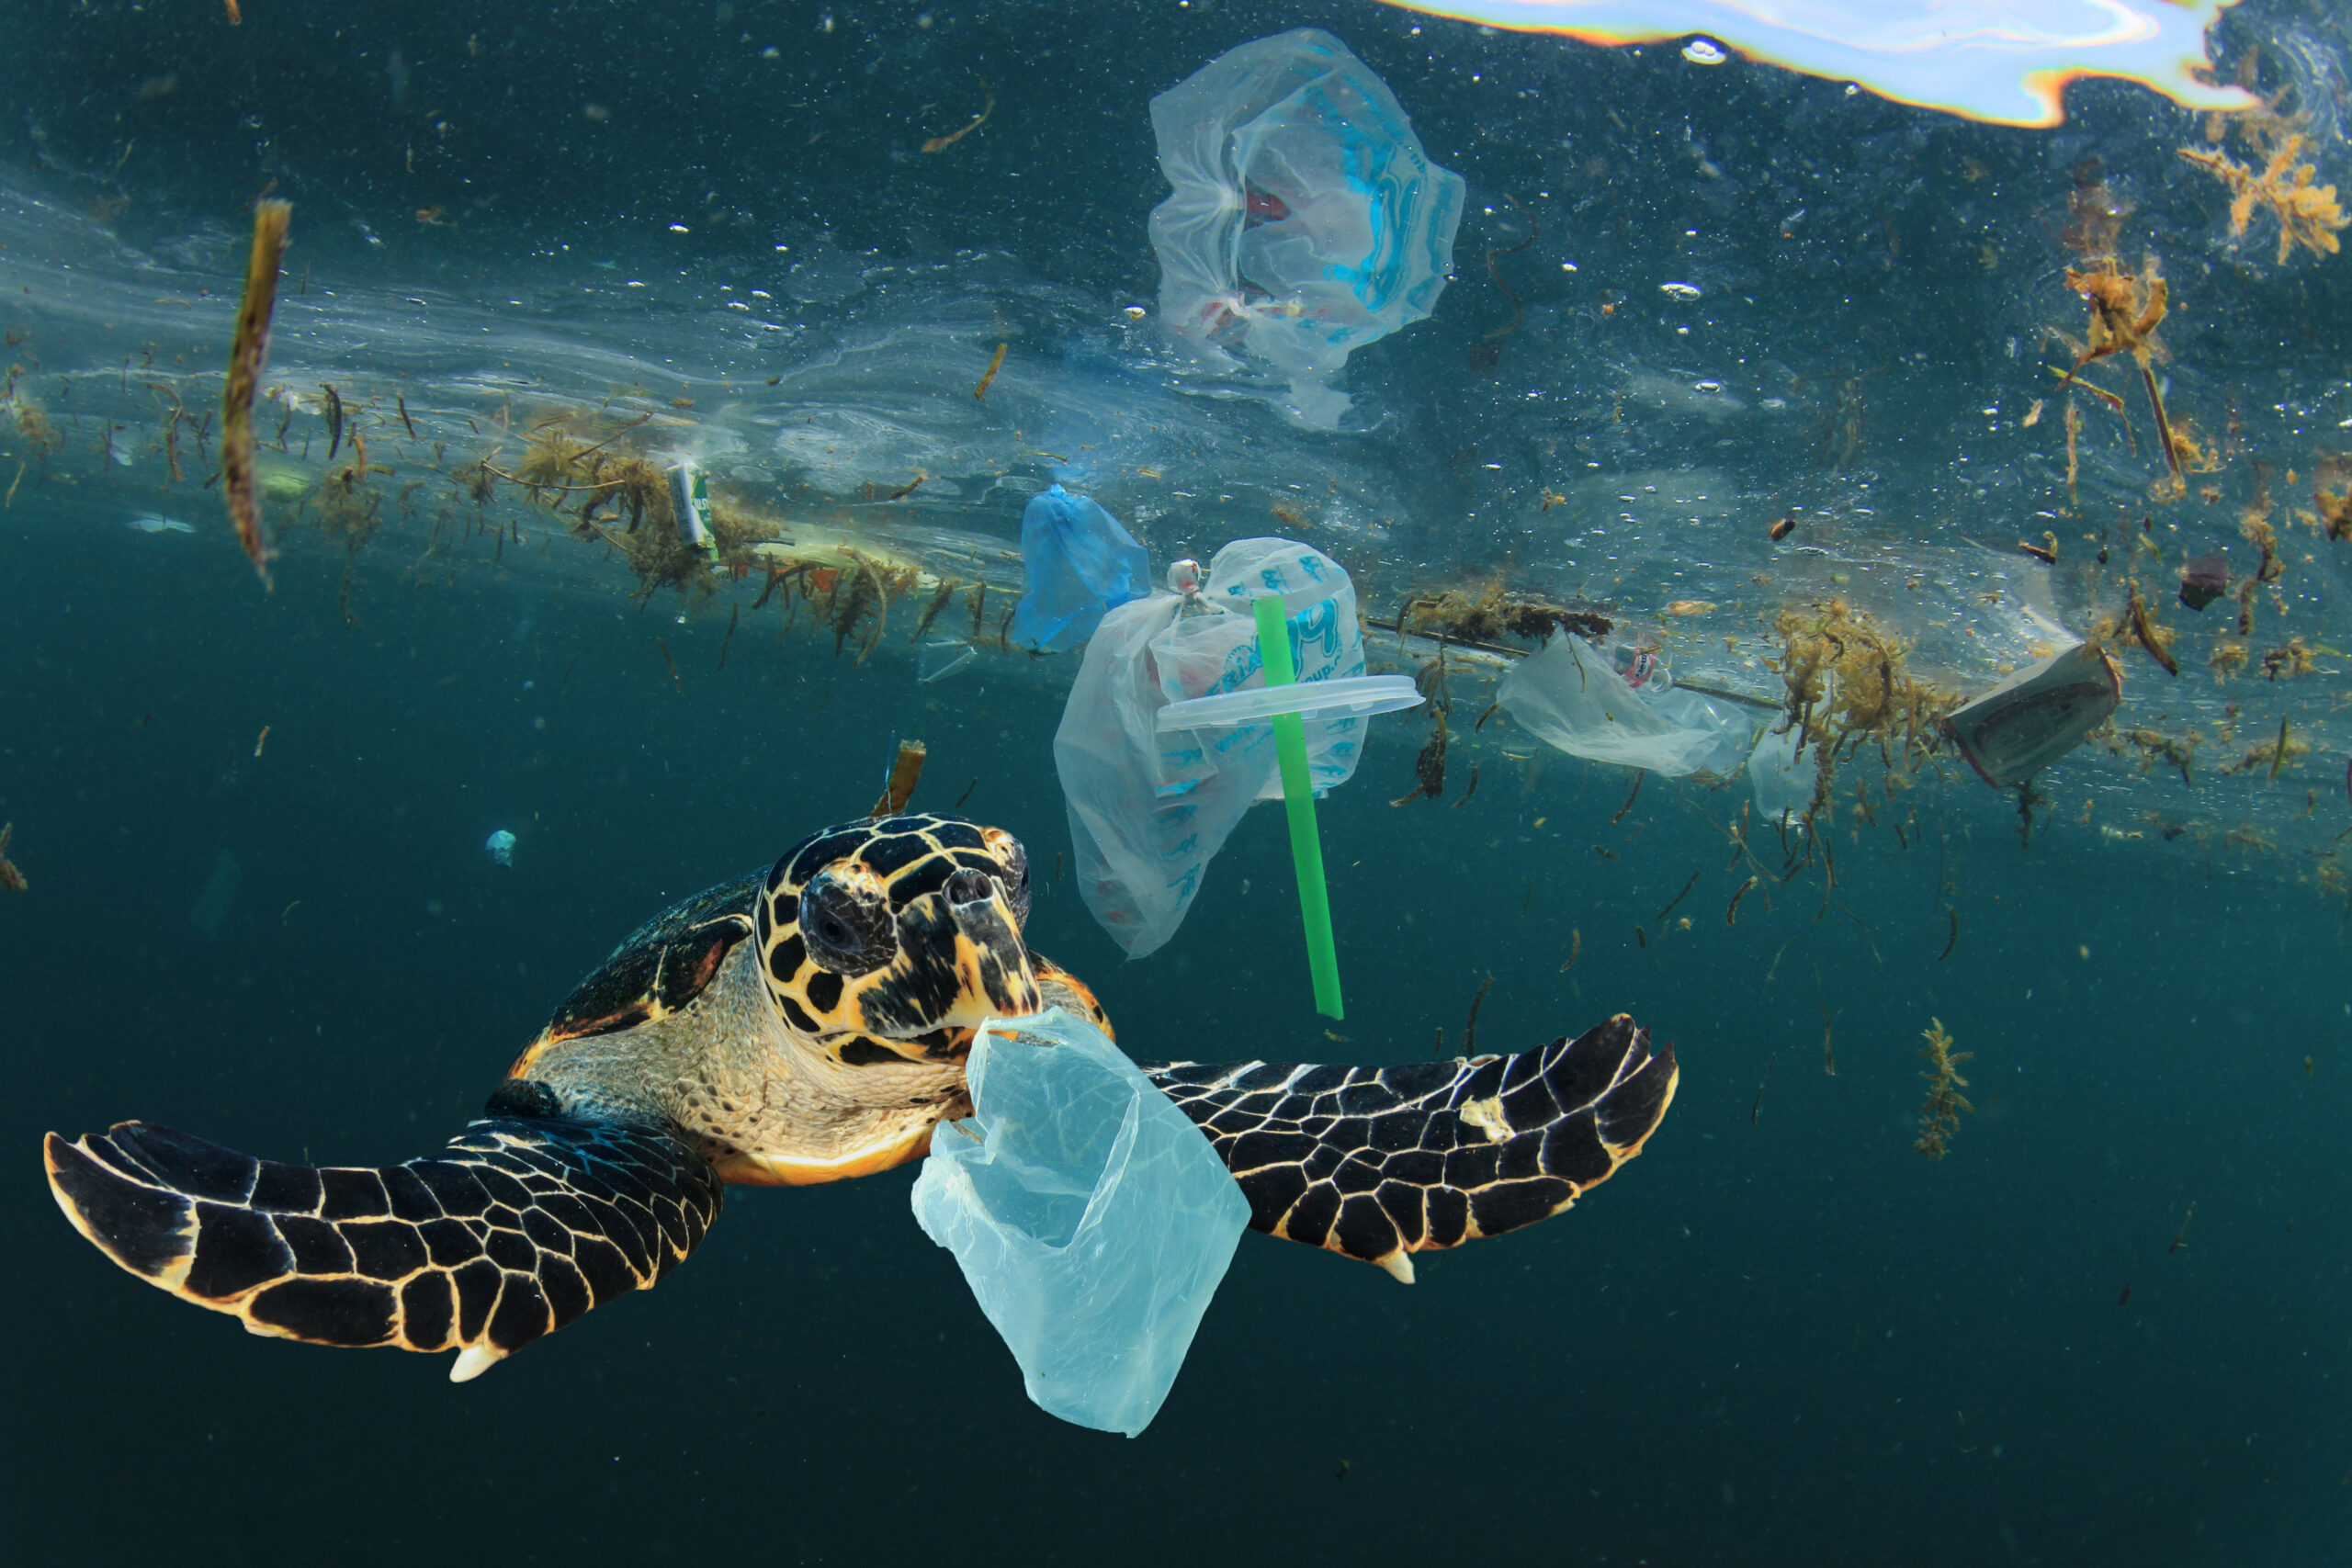 A sea turtle swimming in the ocean surrounded by plastic waste.